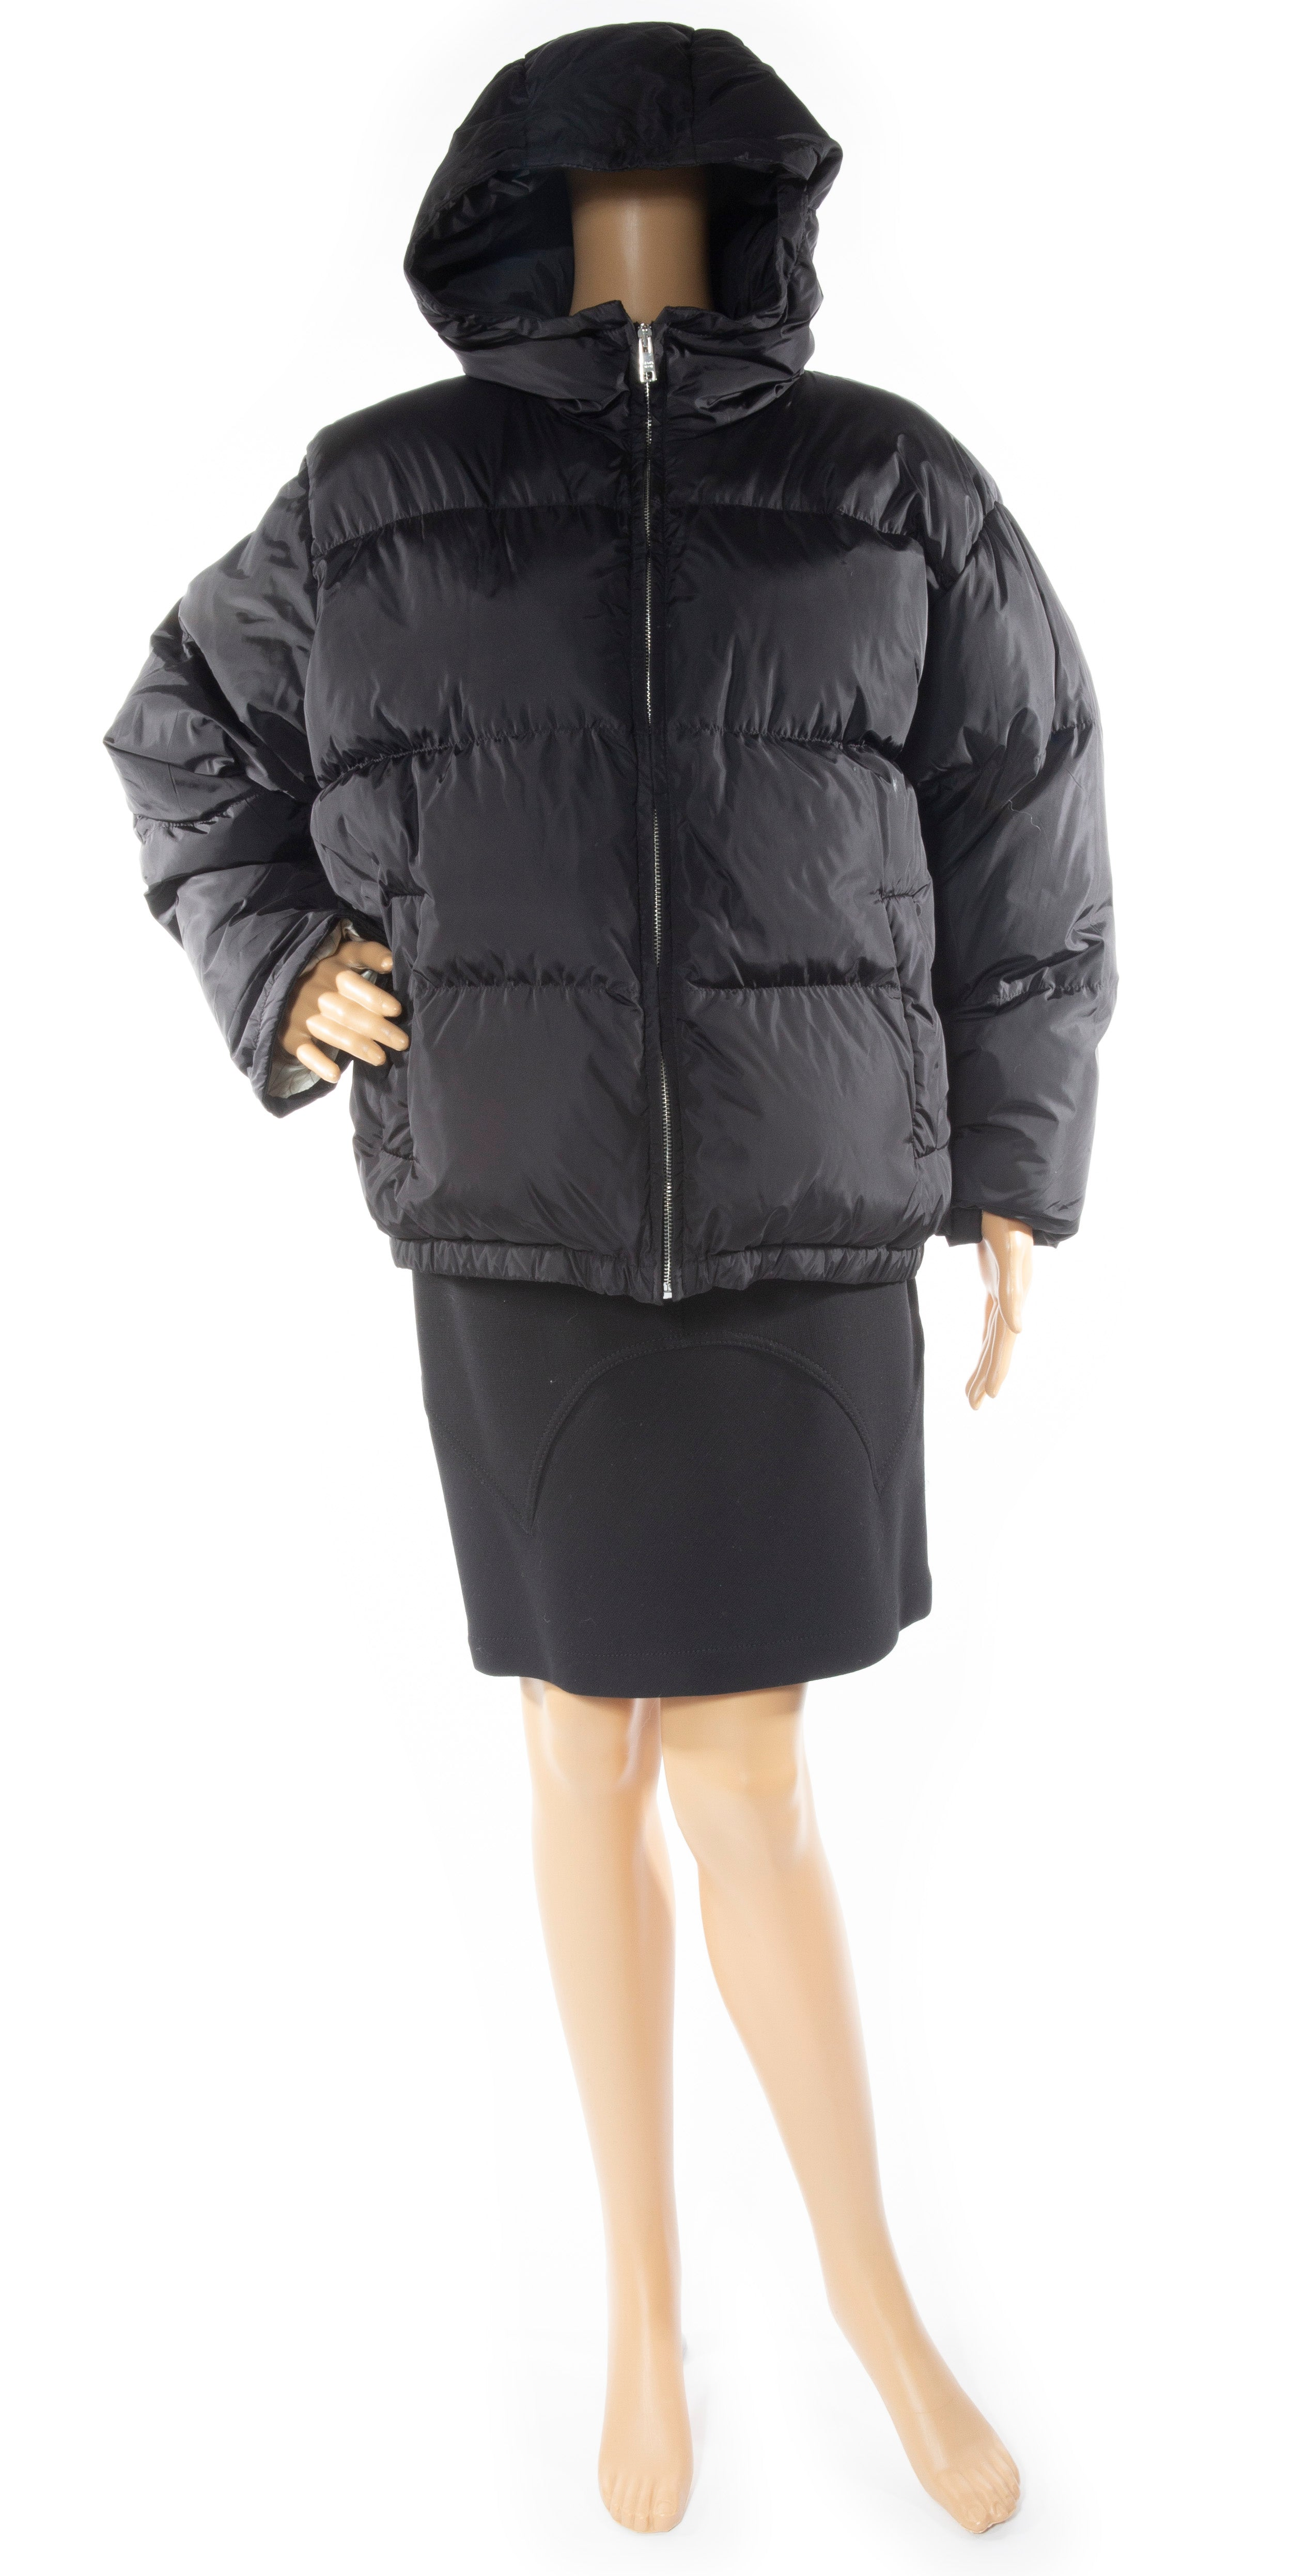 Front view of PRADA Puffer jacket Size: 38 (comparable to US 2)